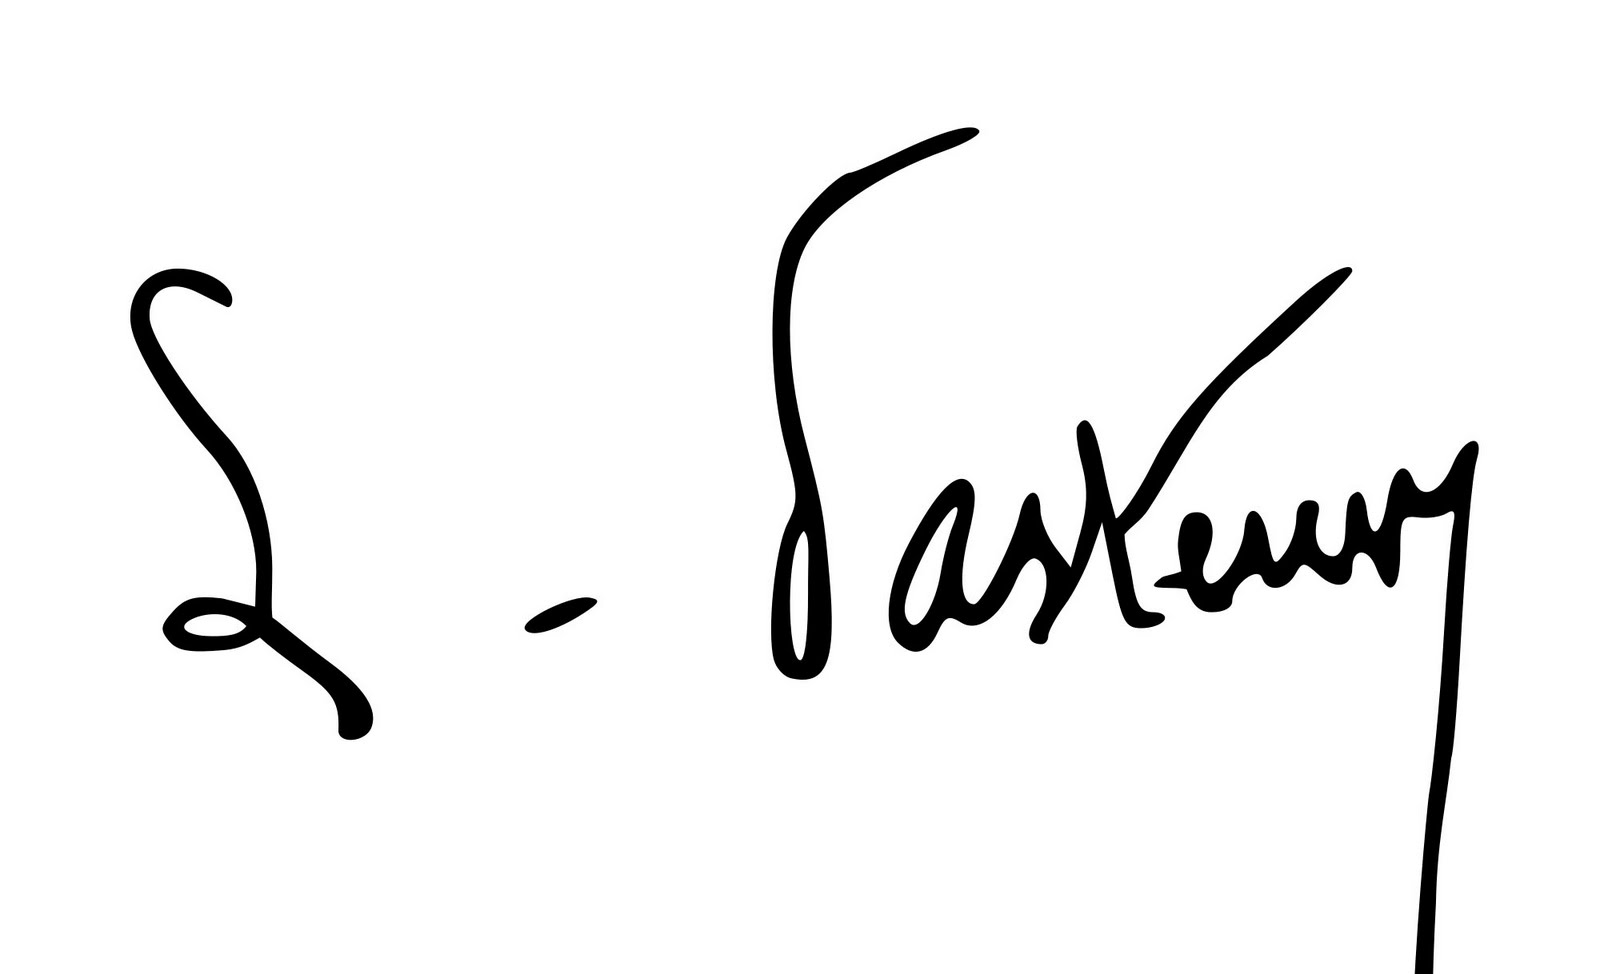 how to avoid blurry signature image